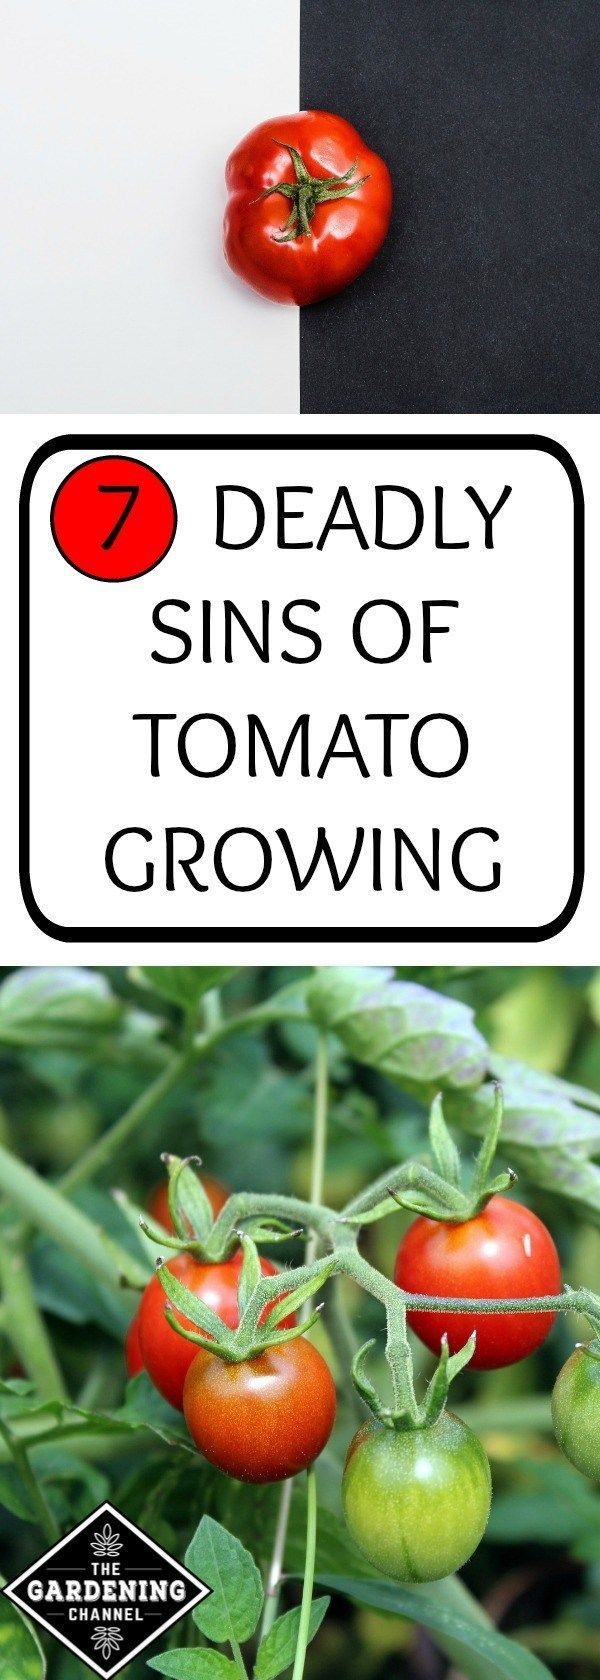 7 Deadly Sins of Tomato-Growing & How to Avoid Them The 7 Deadly Sins of Tomato-Growing & How to Avoid Them - Gardening ChannelThe 7 Deadly Sins of Tomato-Growing & How to Avoid Them - Gardening Channel